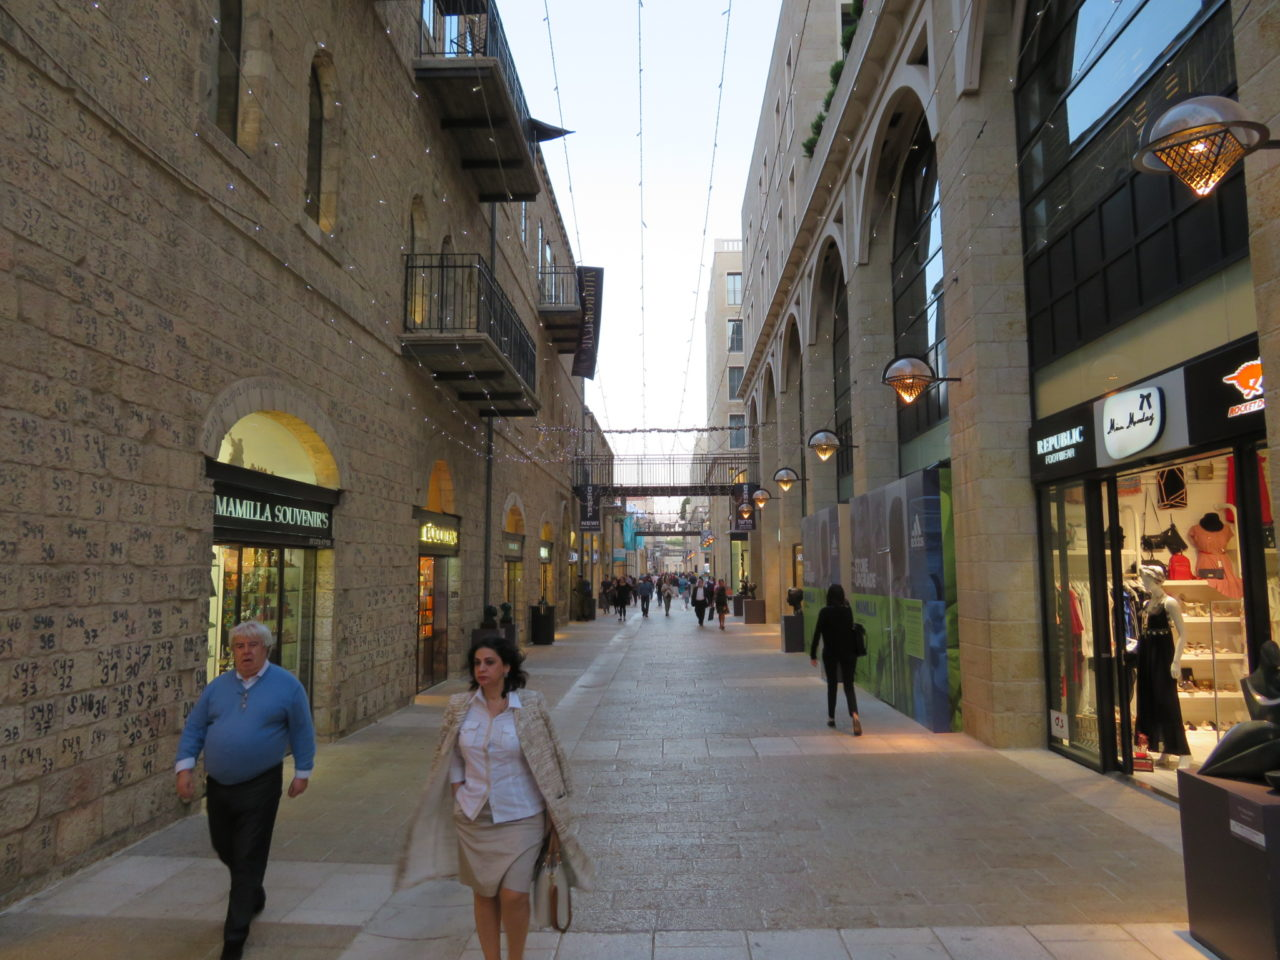 Vacationing in Israel ... Mamilla Mall links the Mamilla Hotel with Jaffa Gate and the Old City of Jerusalem